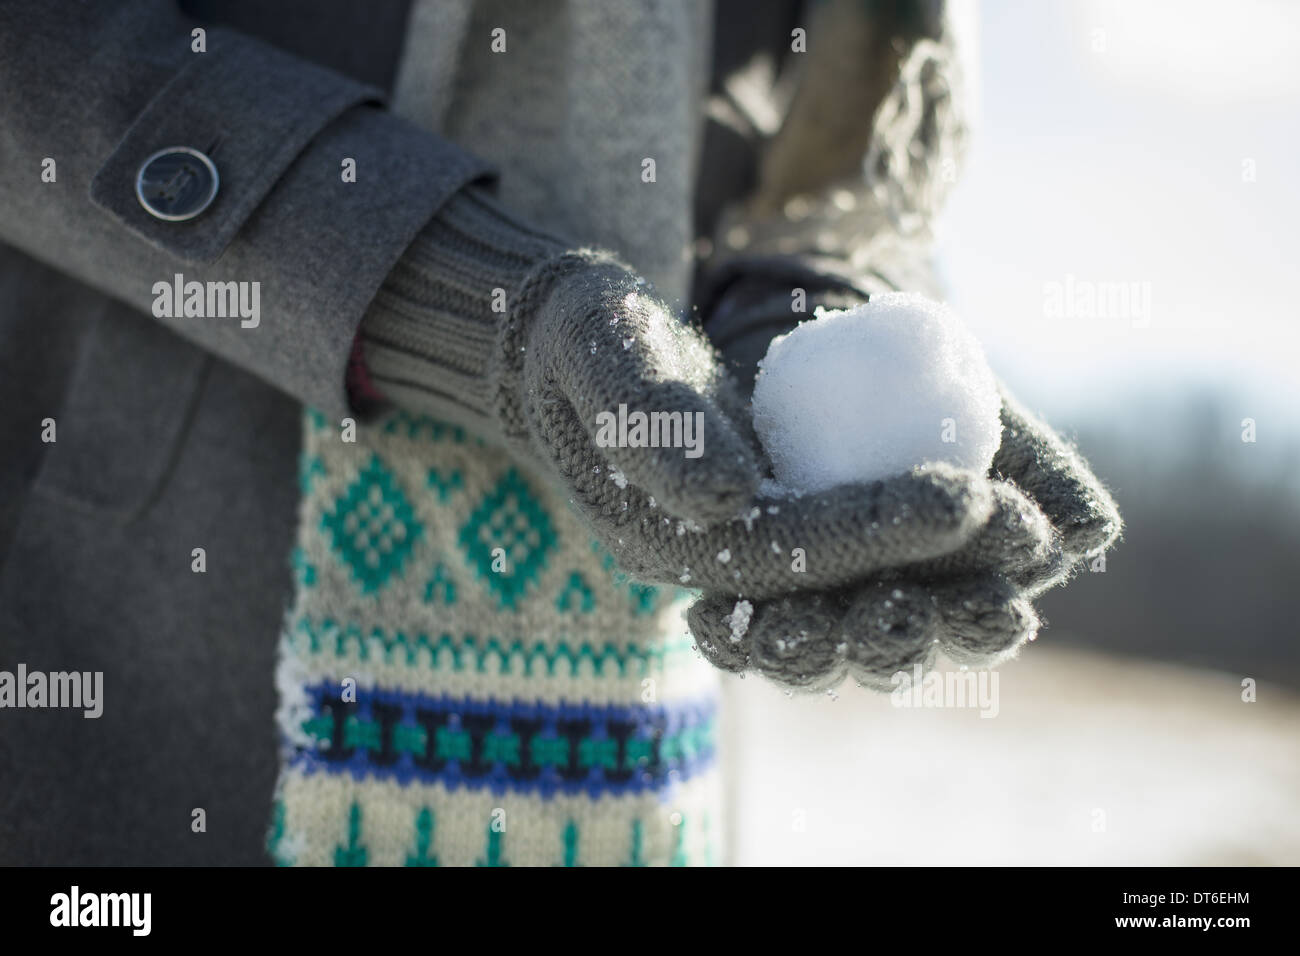 A young woman holding a small snowball in her gloved hands. - Stock Image